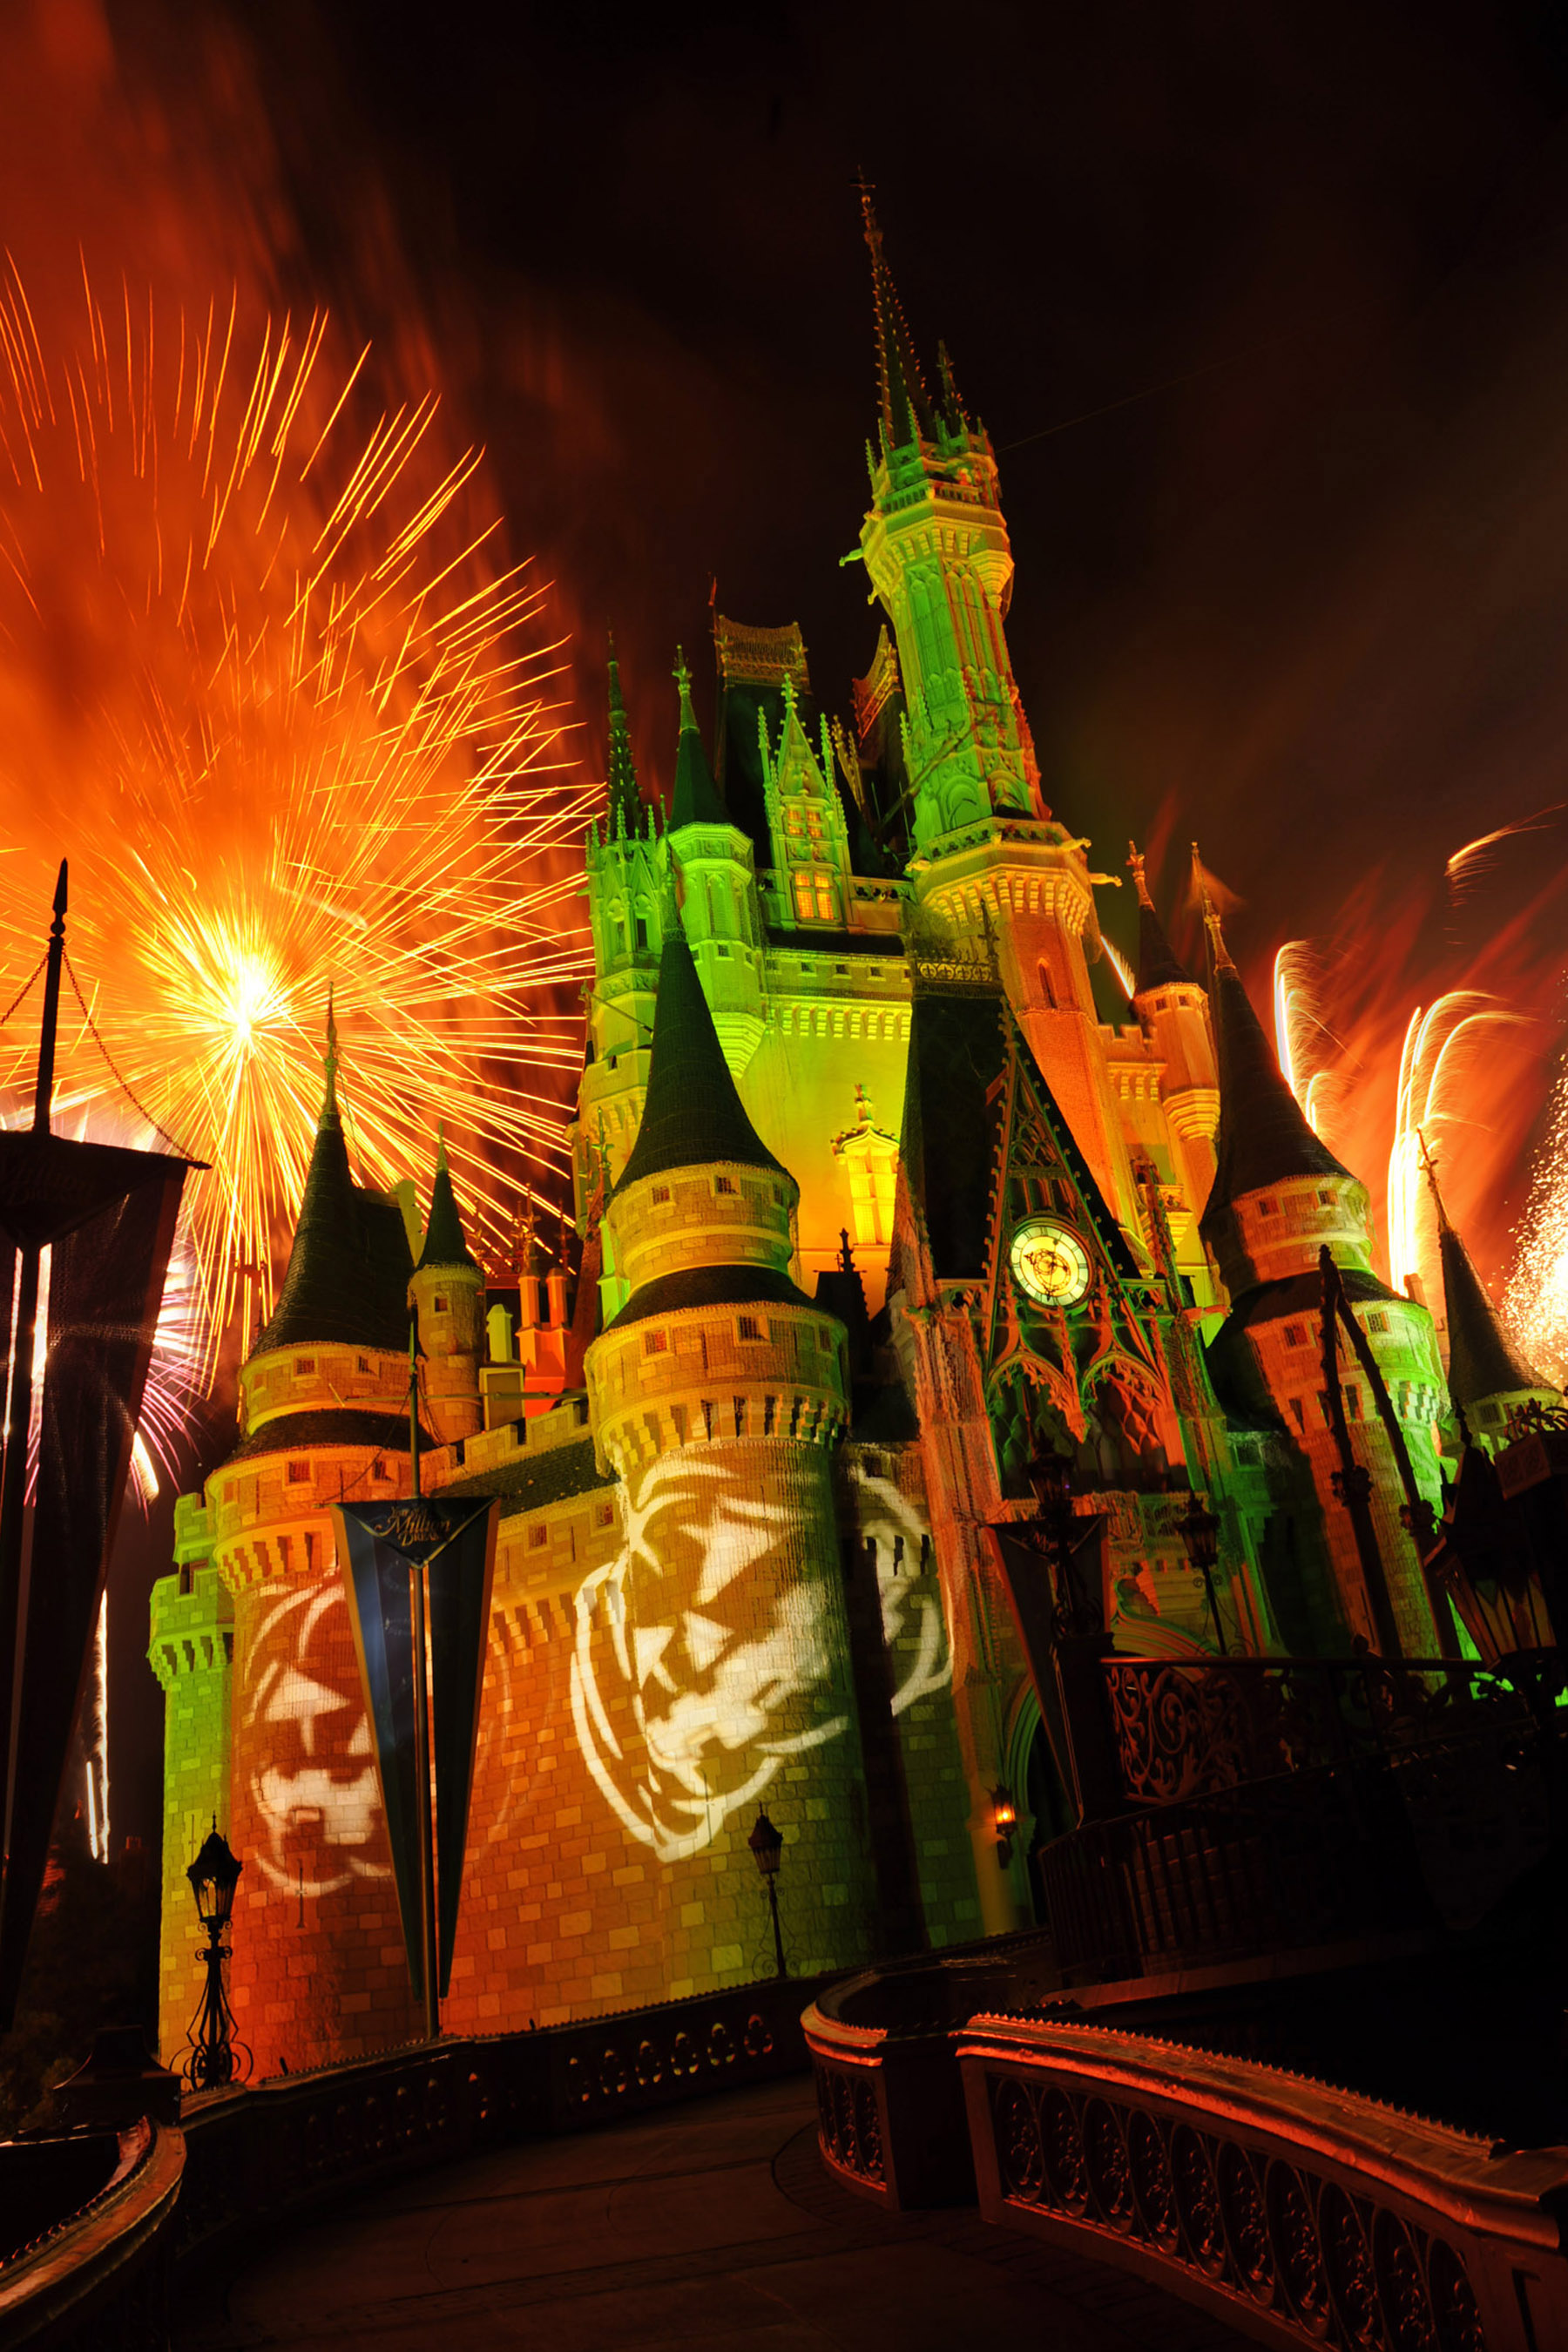 Haunting and Magical - Halloween at Walt Disney World | HuffPost